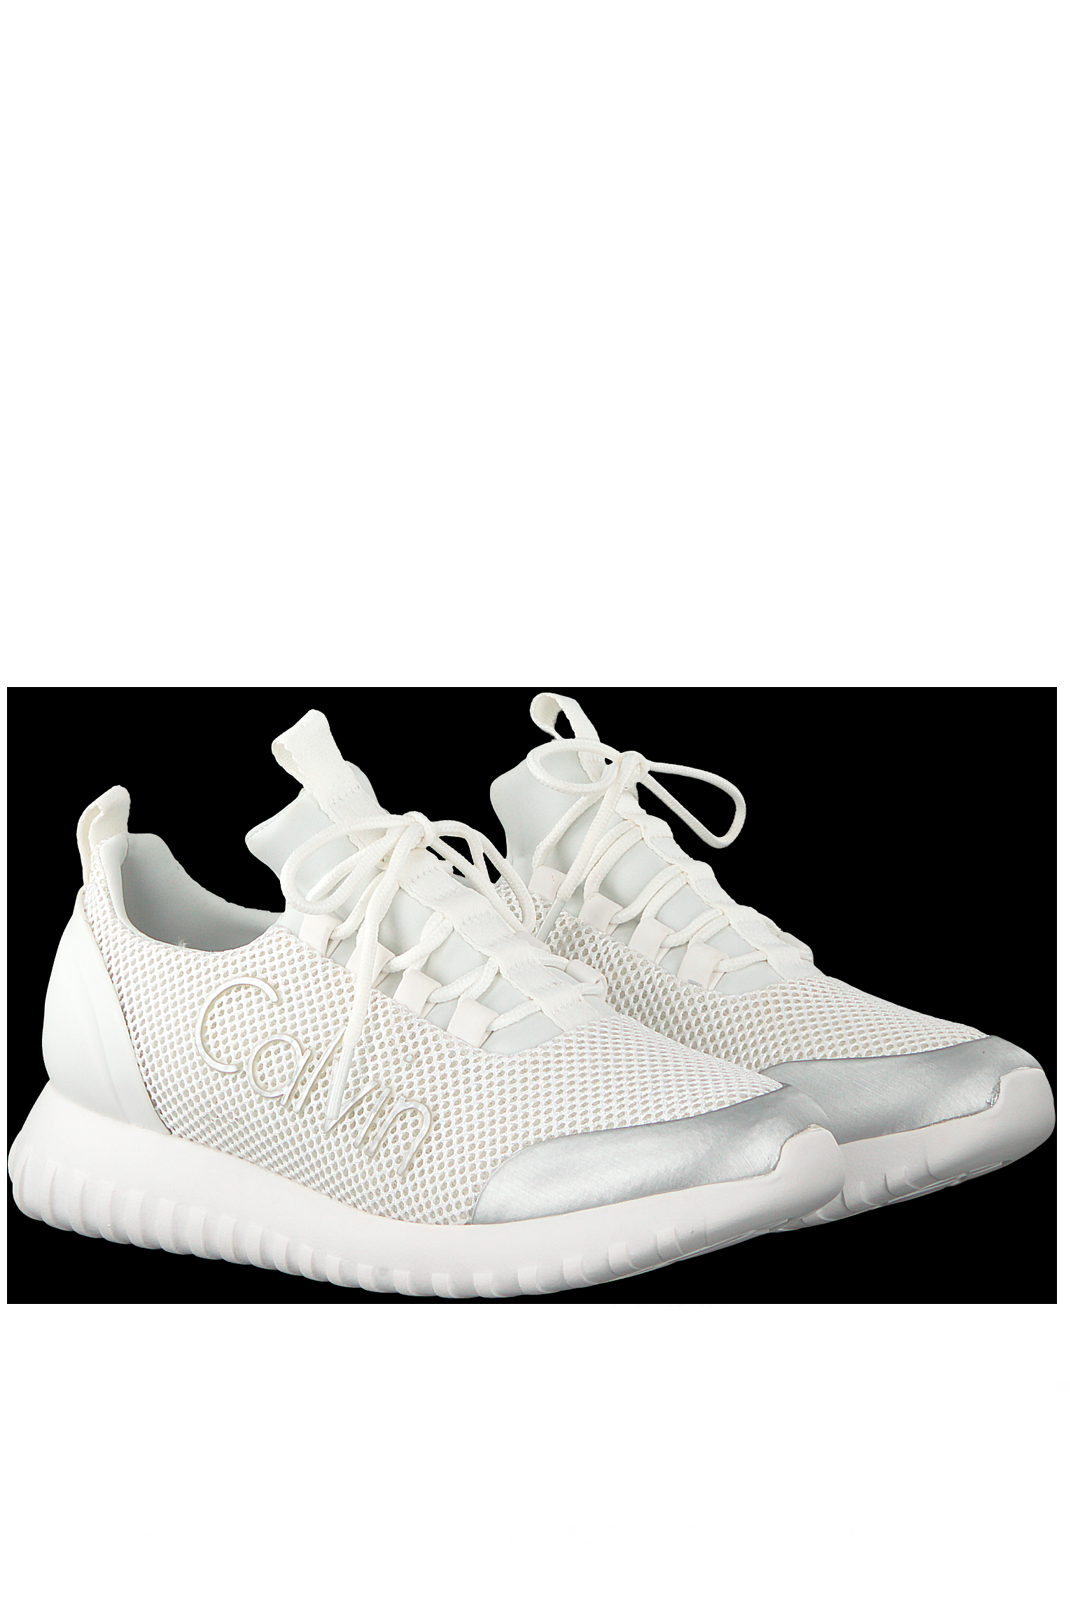 Baskets / Sneakers  Calvin klein REIKA MESH/BRUSHED METAL WHITE SILVER